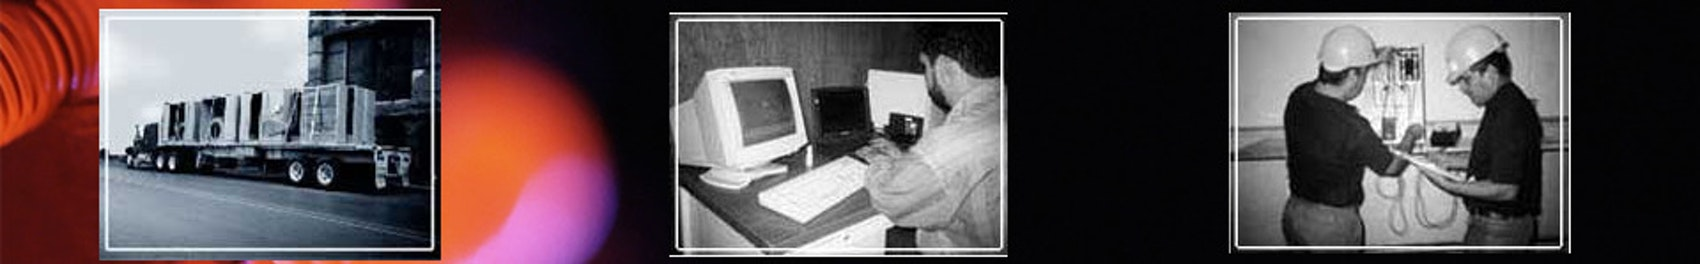 CALELEC team during the 1990s